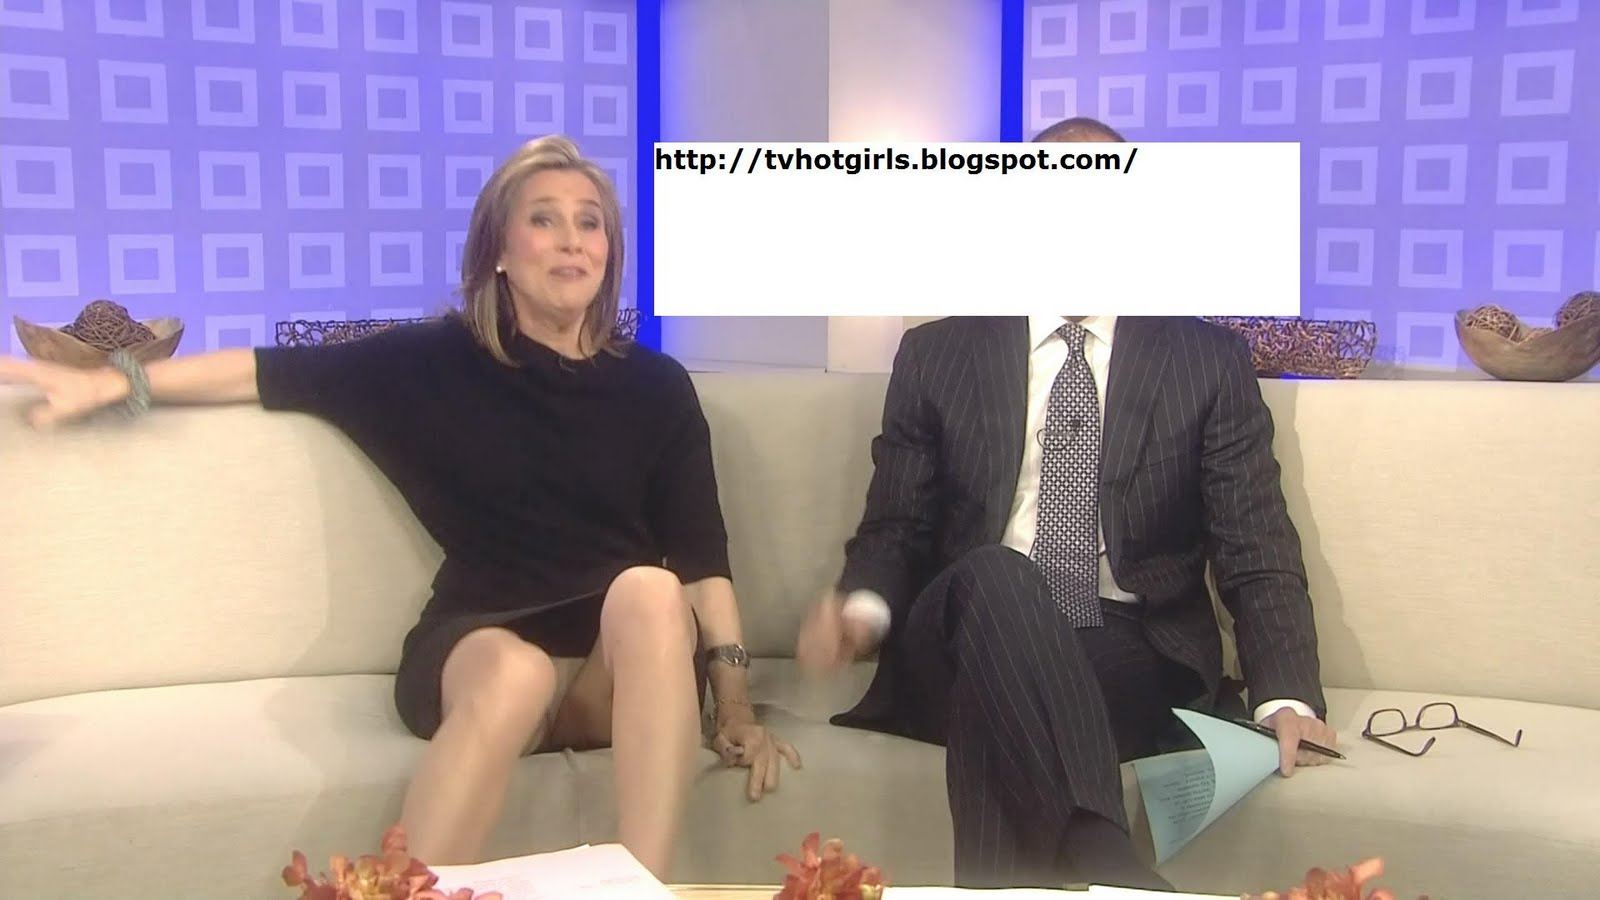 News anchor upskirt